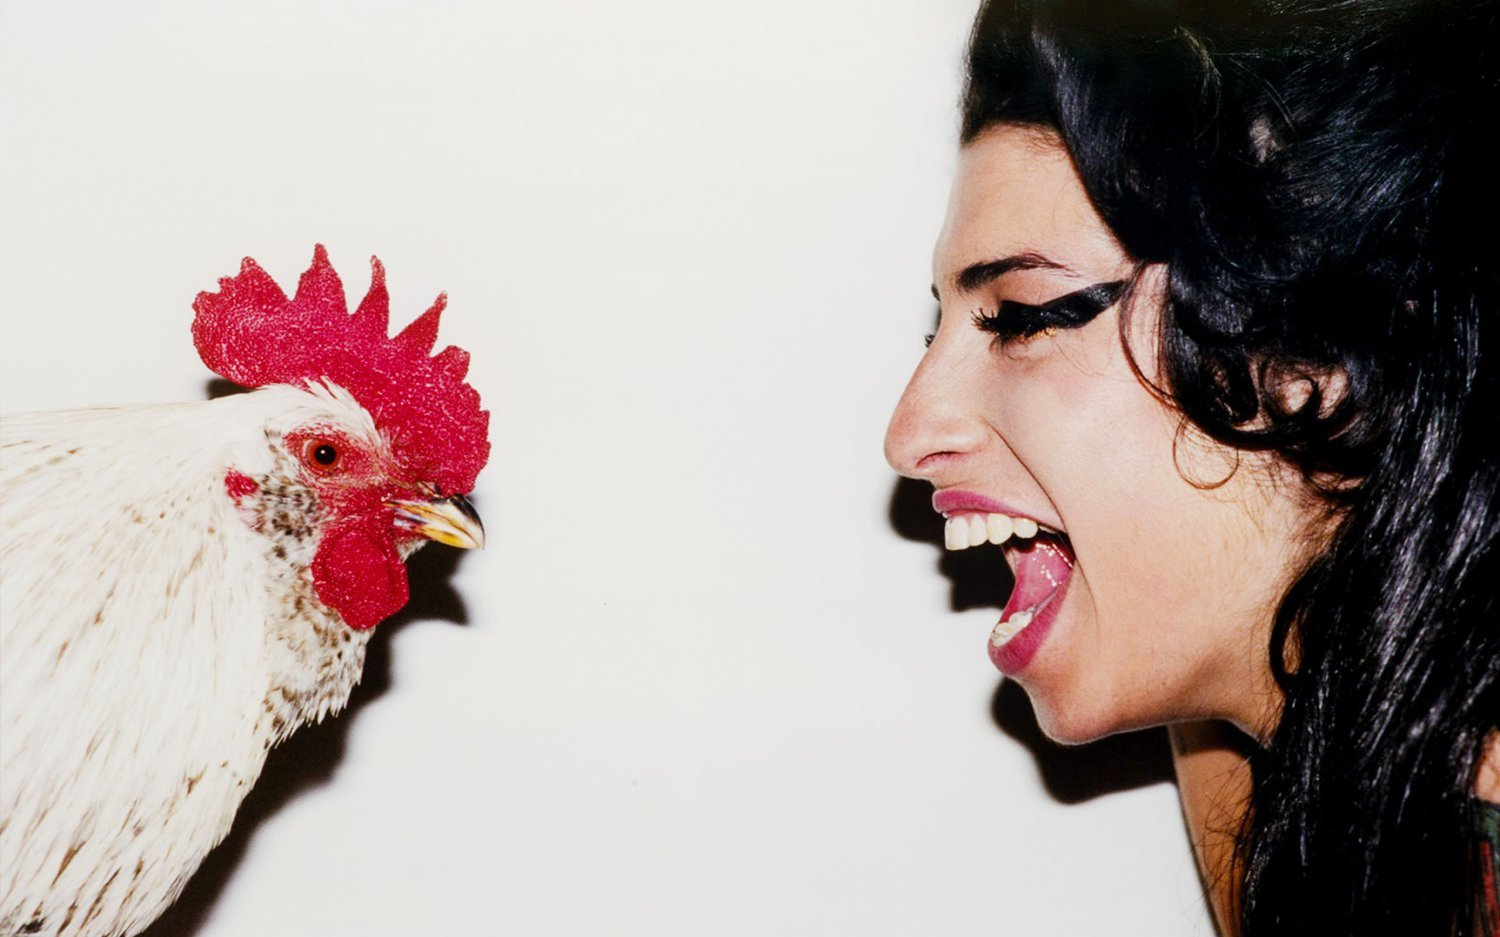 Amy Winehouse with a Chicken   13x19 inches Poster Print